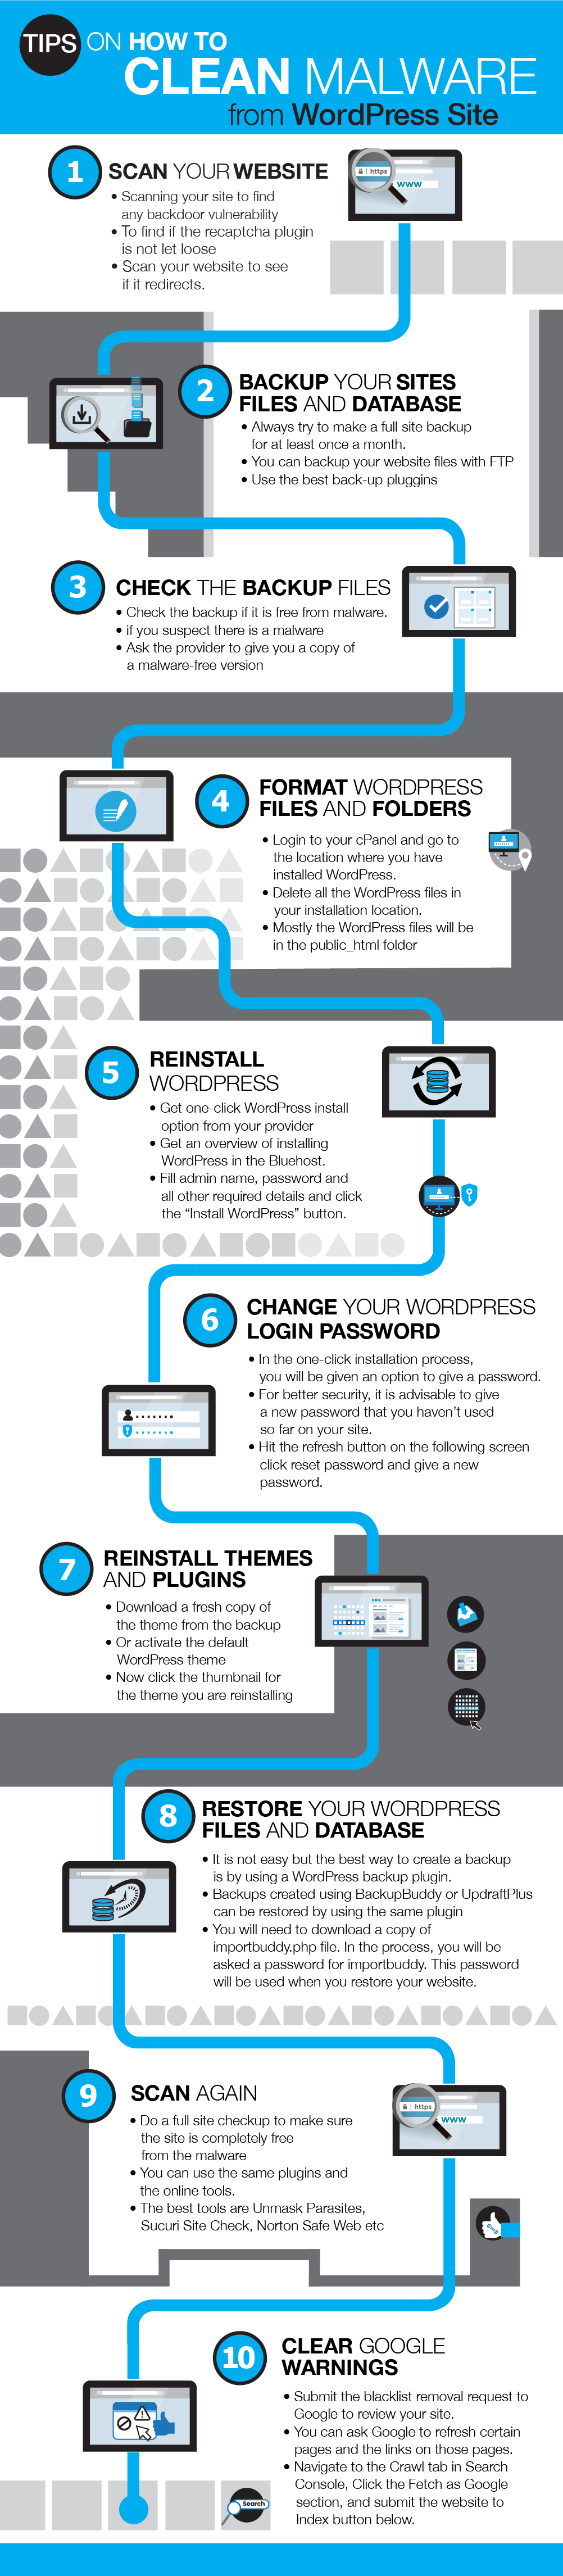 How to Clean Malware-Infected WordPress Website [Infographic]